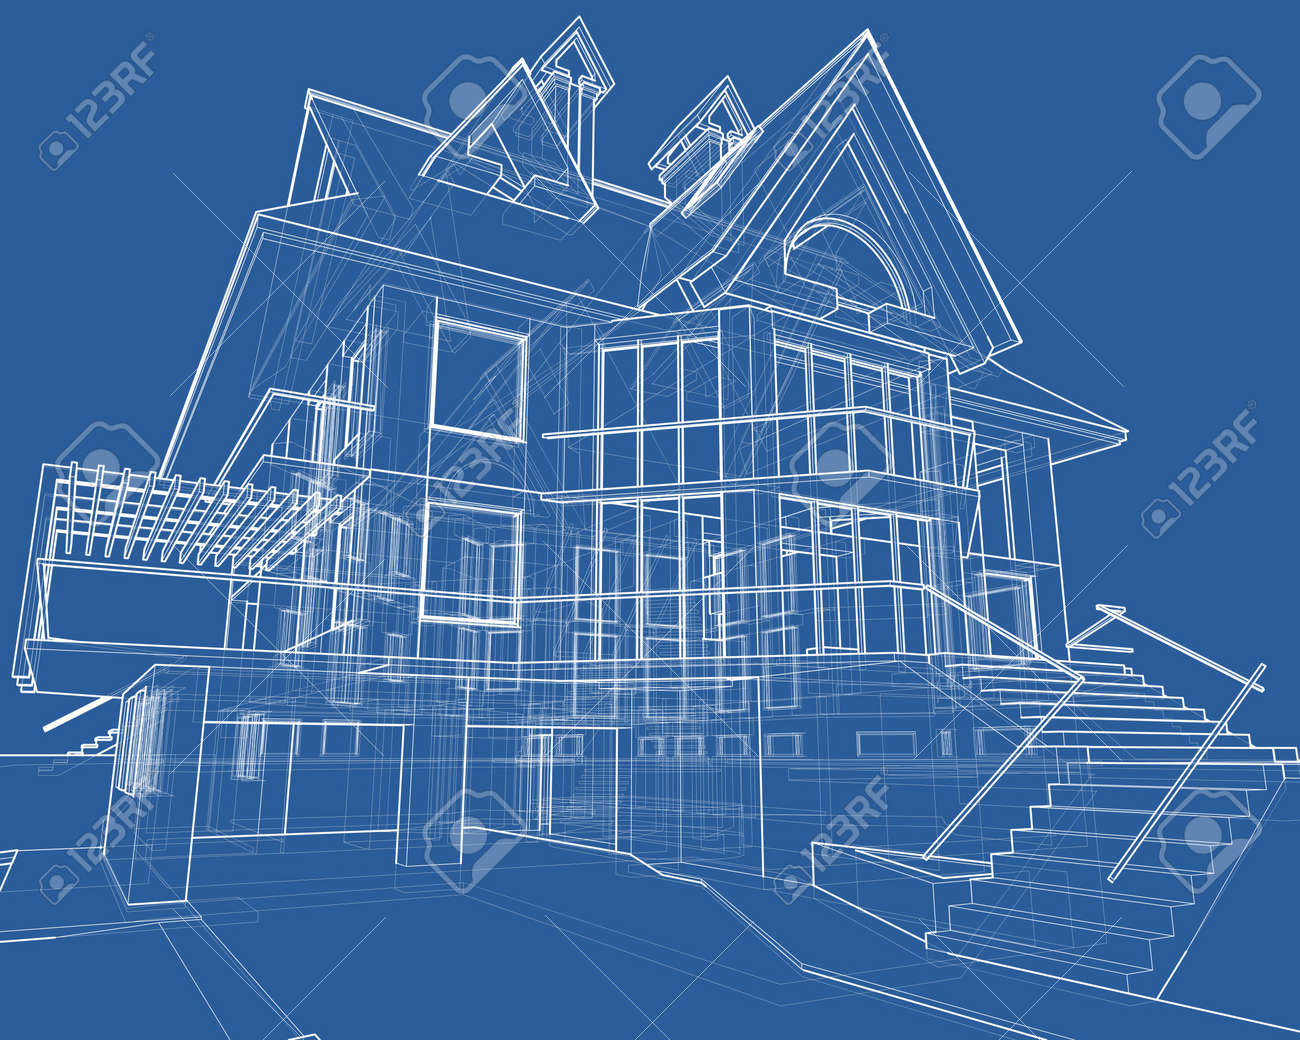 House blueprint 3d technical draw stock photo picture and house blueprint 3d technical draw stock photo 2886142 malvernweather Images